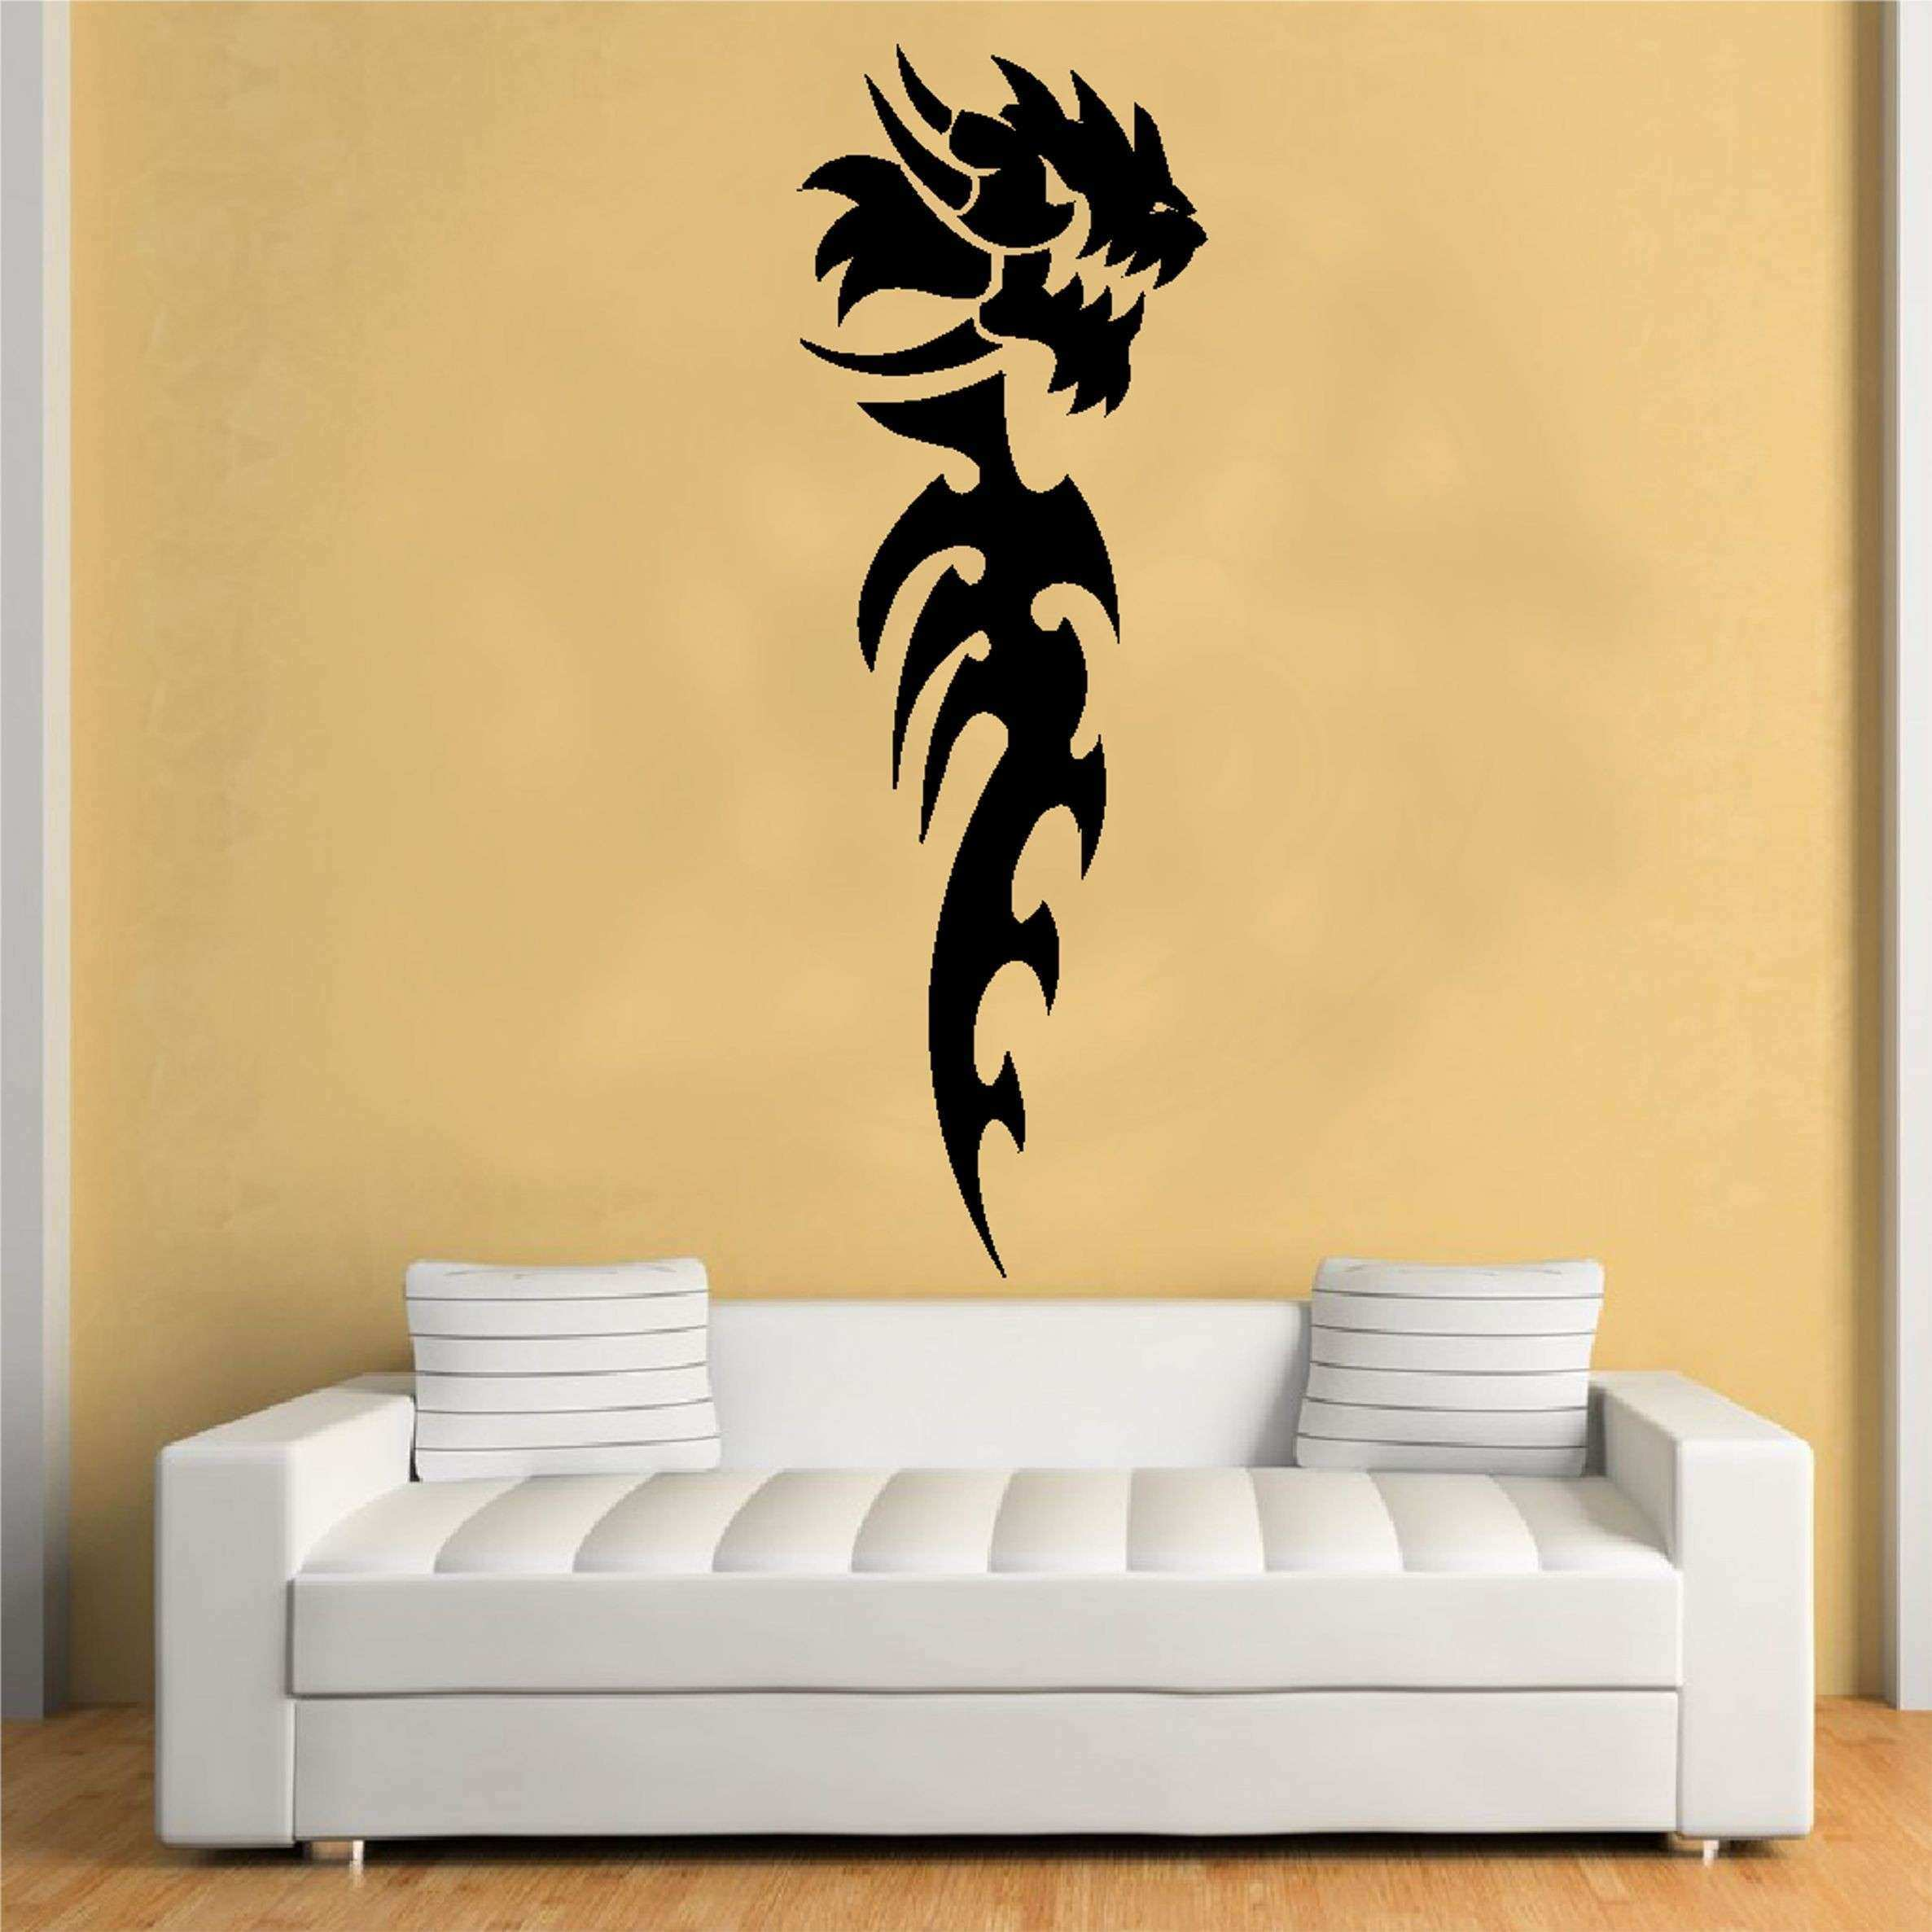 Amazing Stencil Art For Walls Ensign - Art & Wall Decor - hecatalog.info